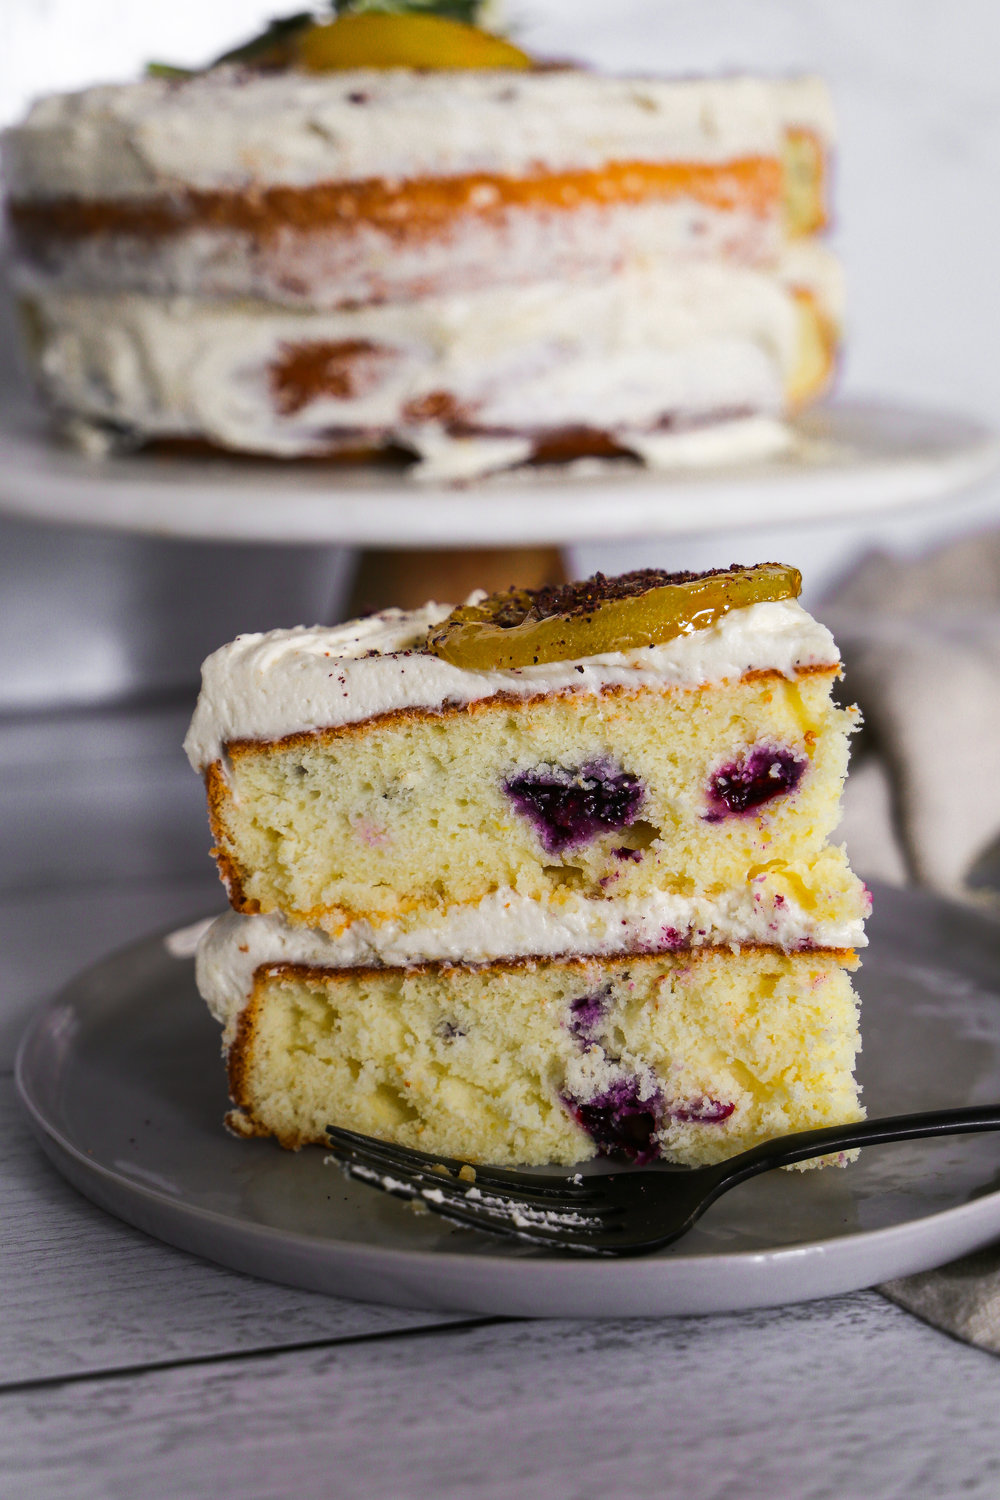 Blueberry Citrus Cake - Meet carrot cake's worst nightmare.